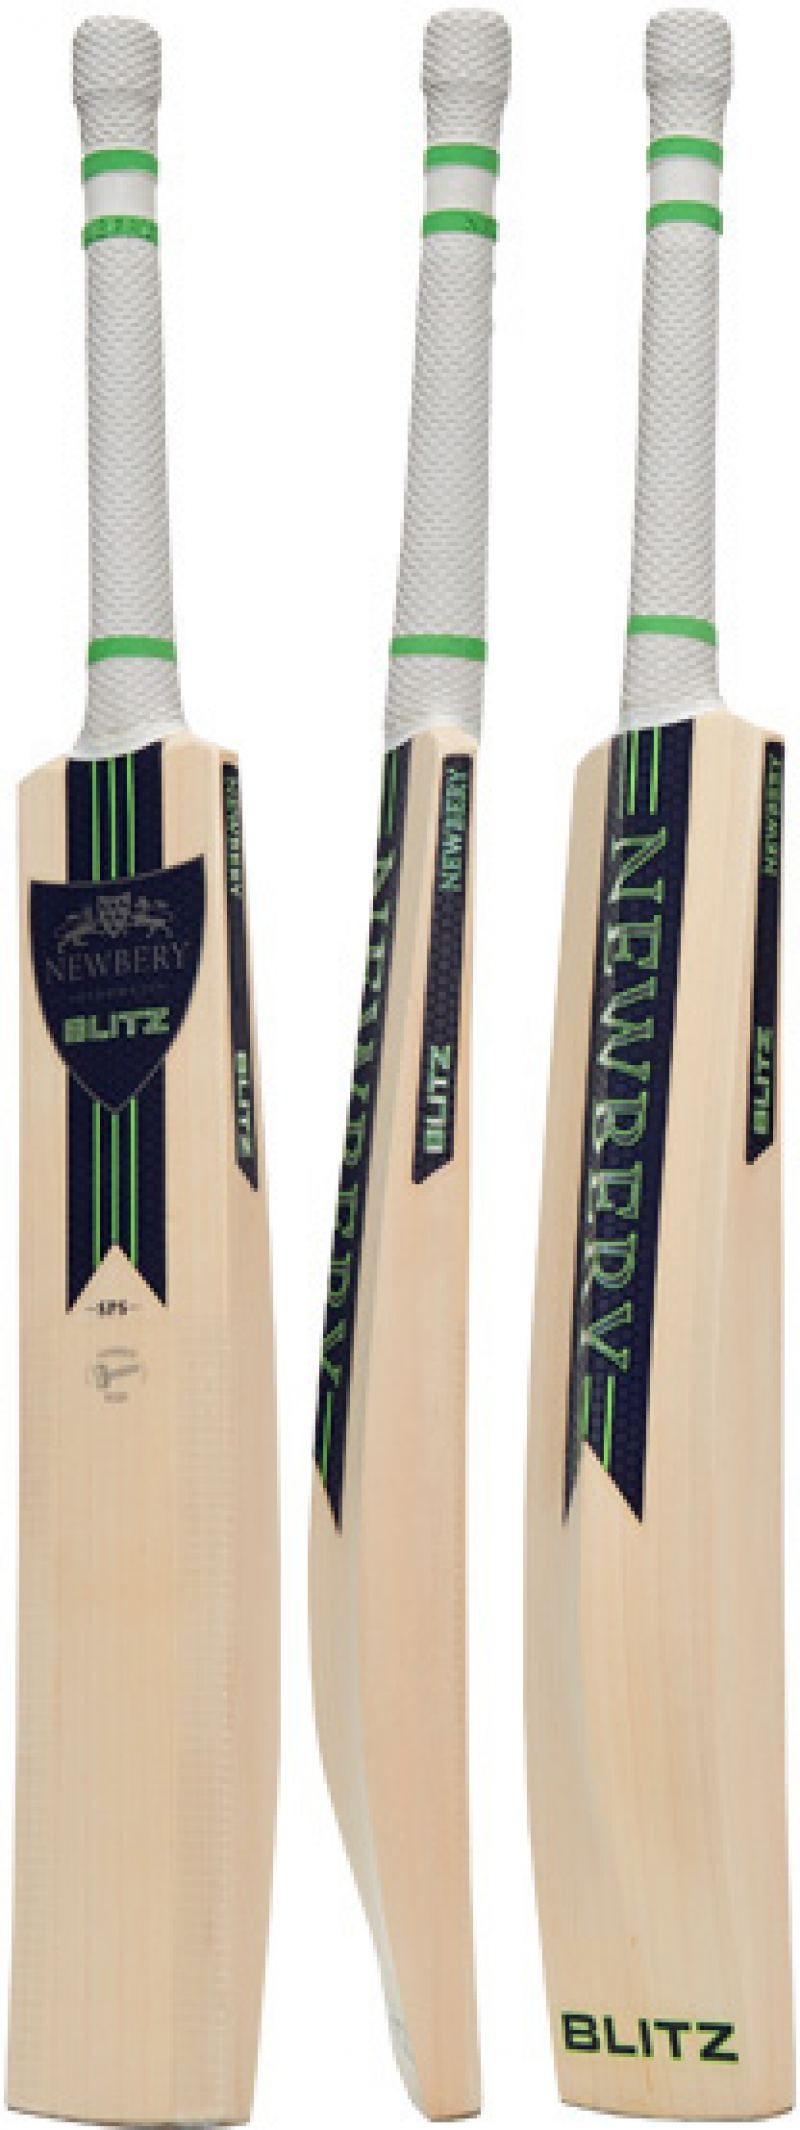 Newbery Blitz G4 Cricket Bat